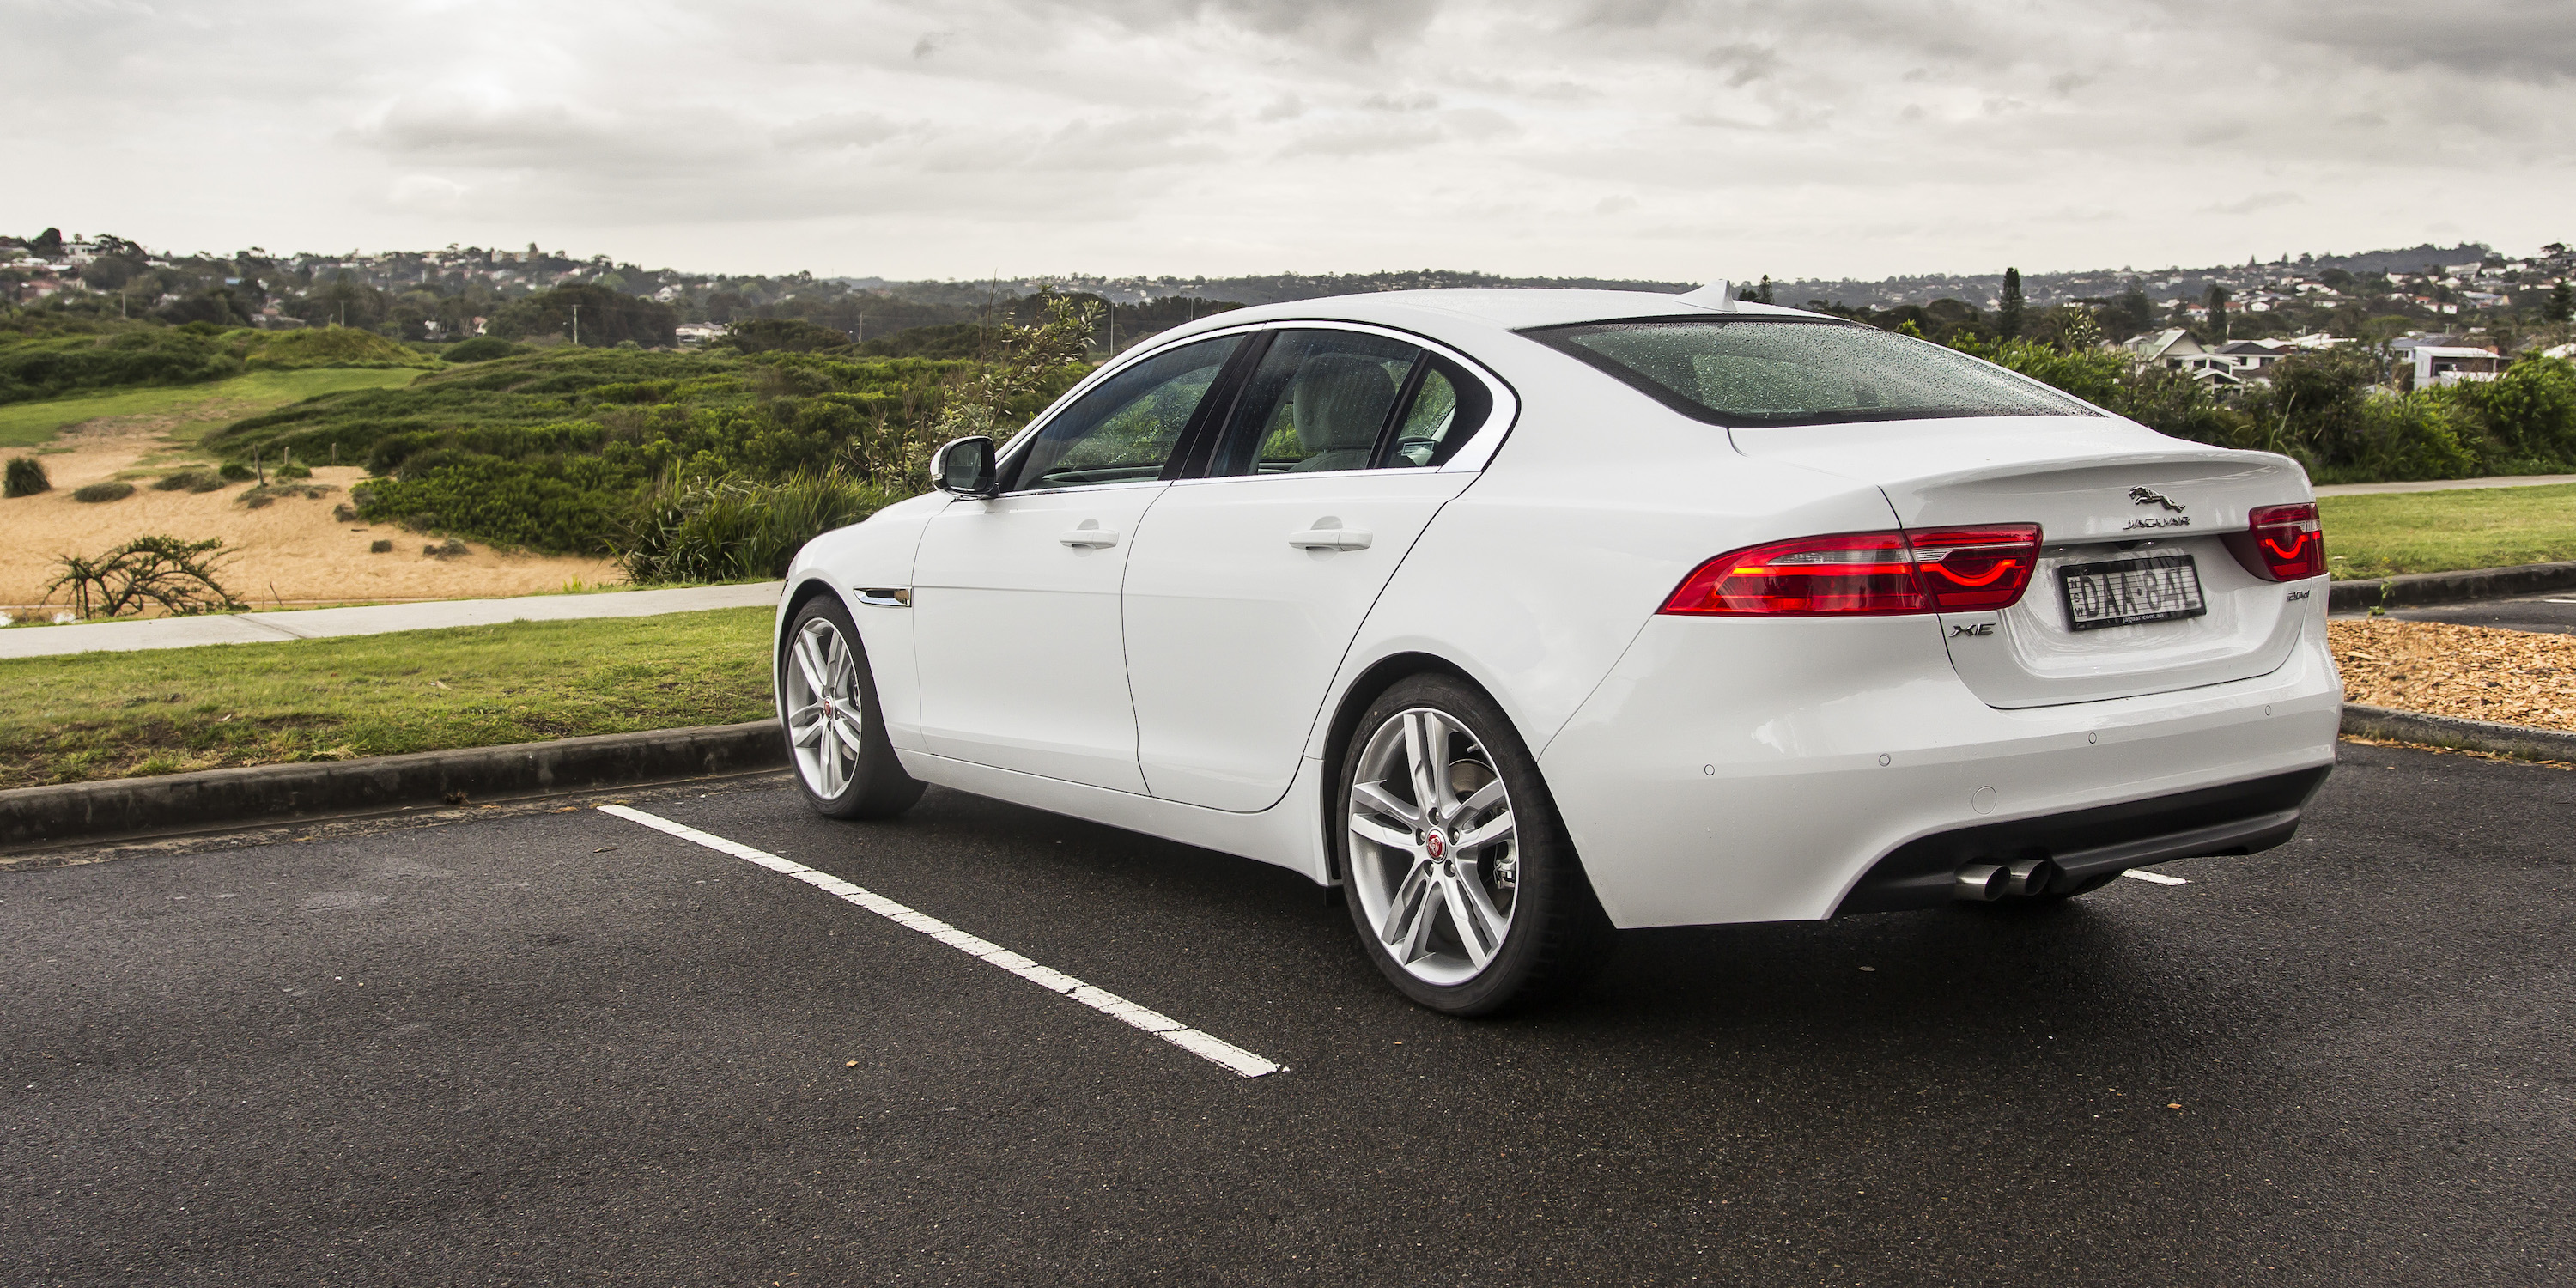 2015 jaguar xe 20d prestige review photos caradvice